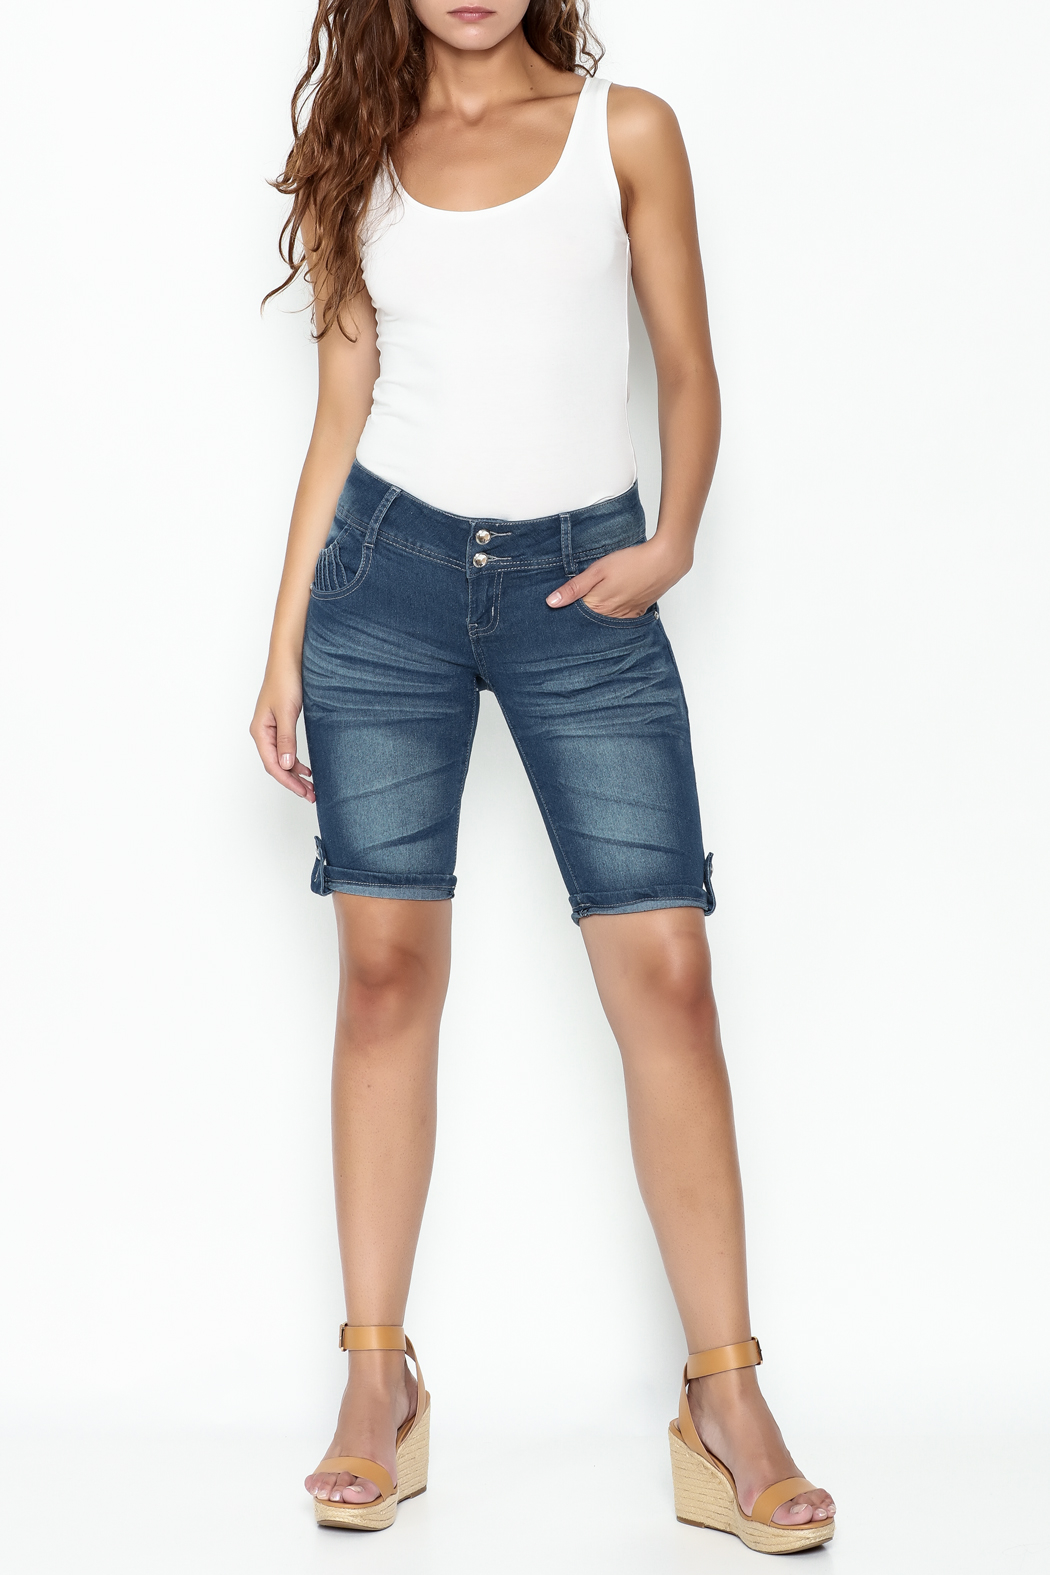 Kaba Denim Bermuda Shorts - Side Cropped Image